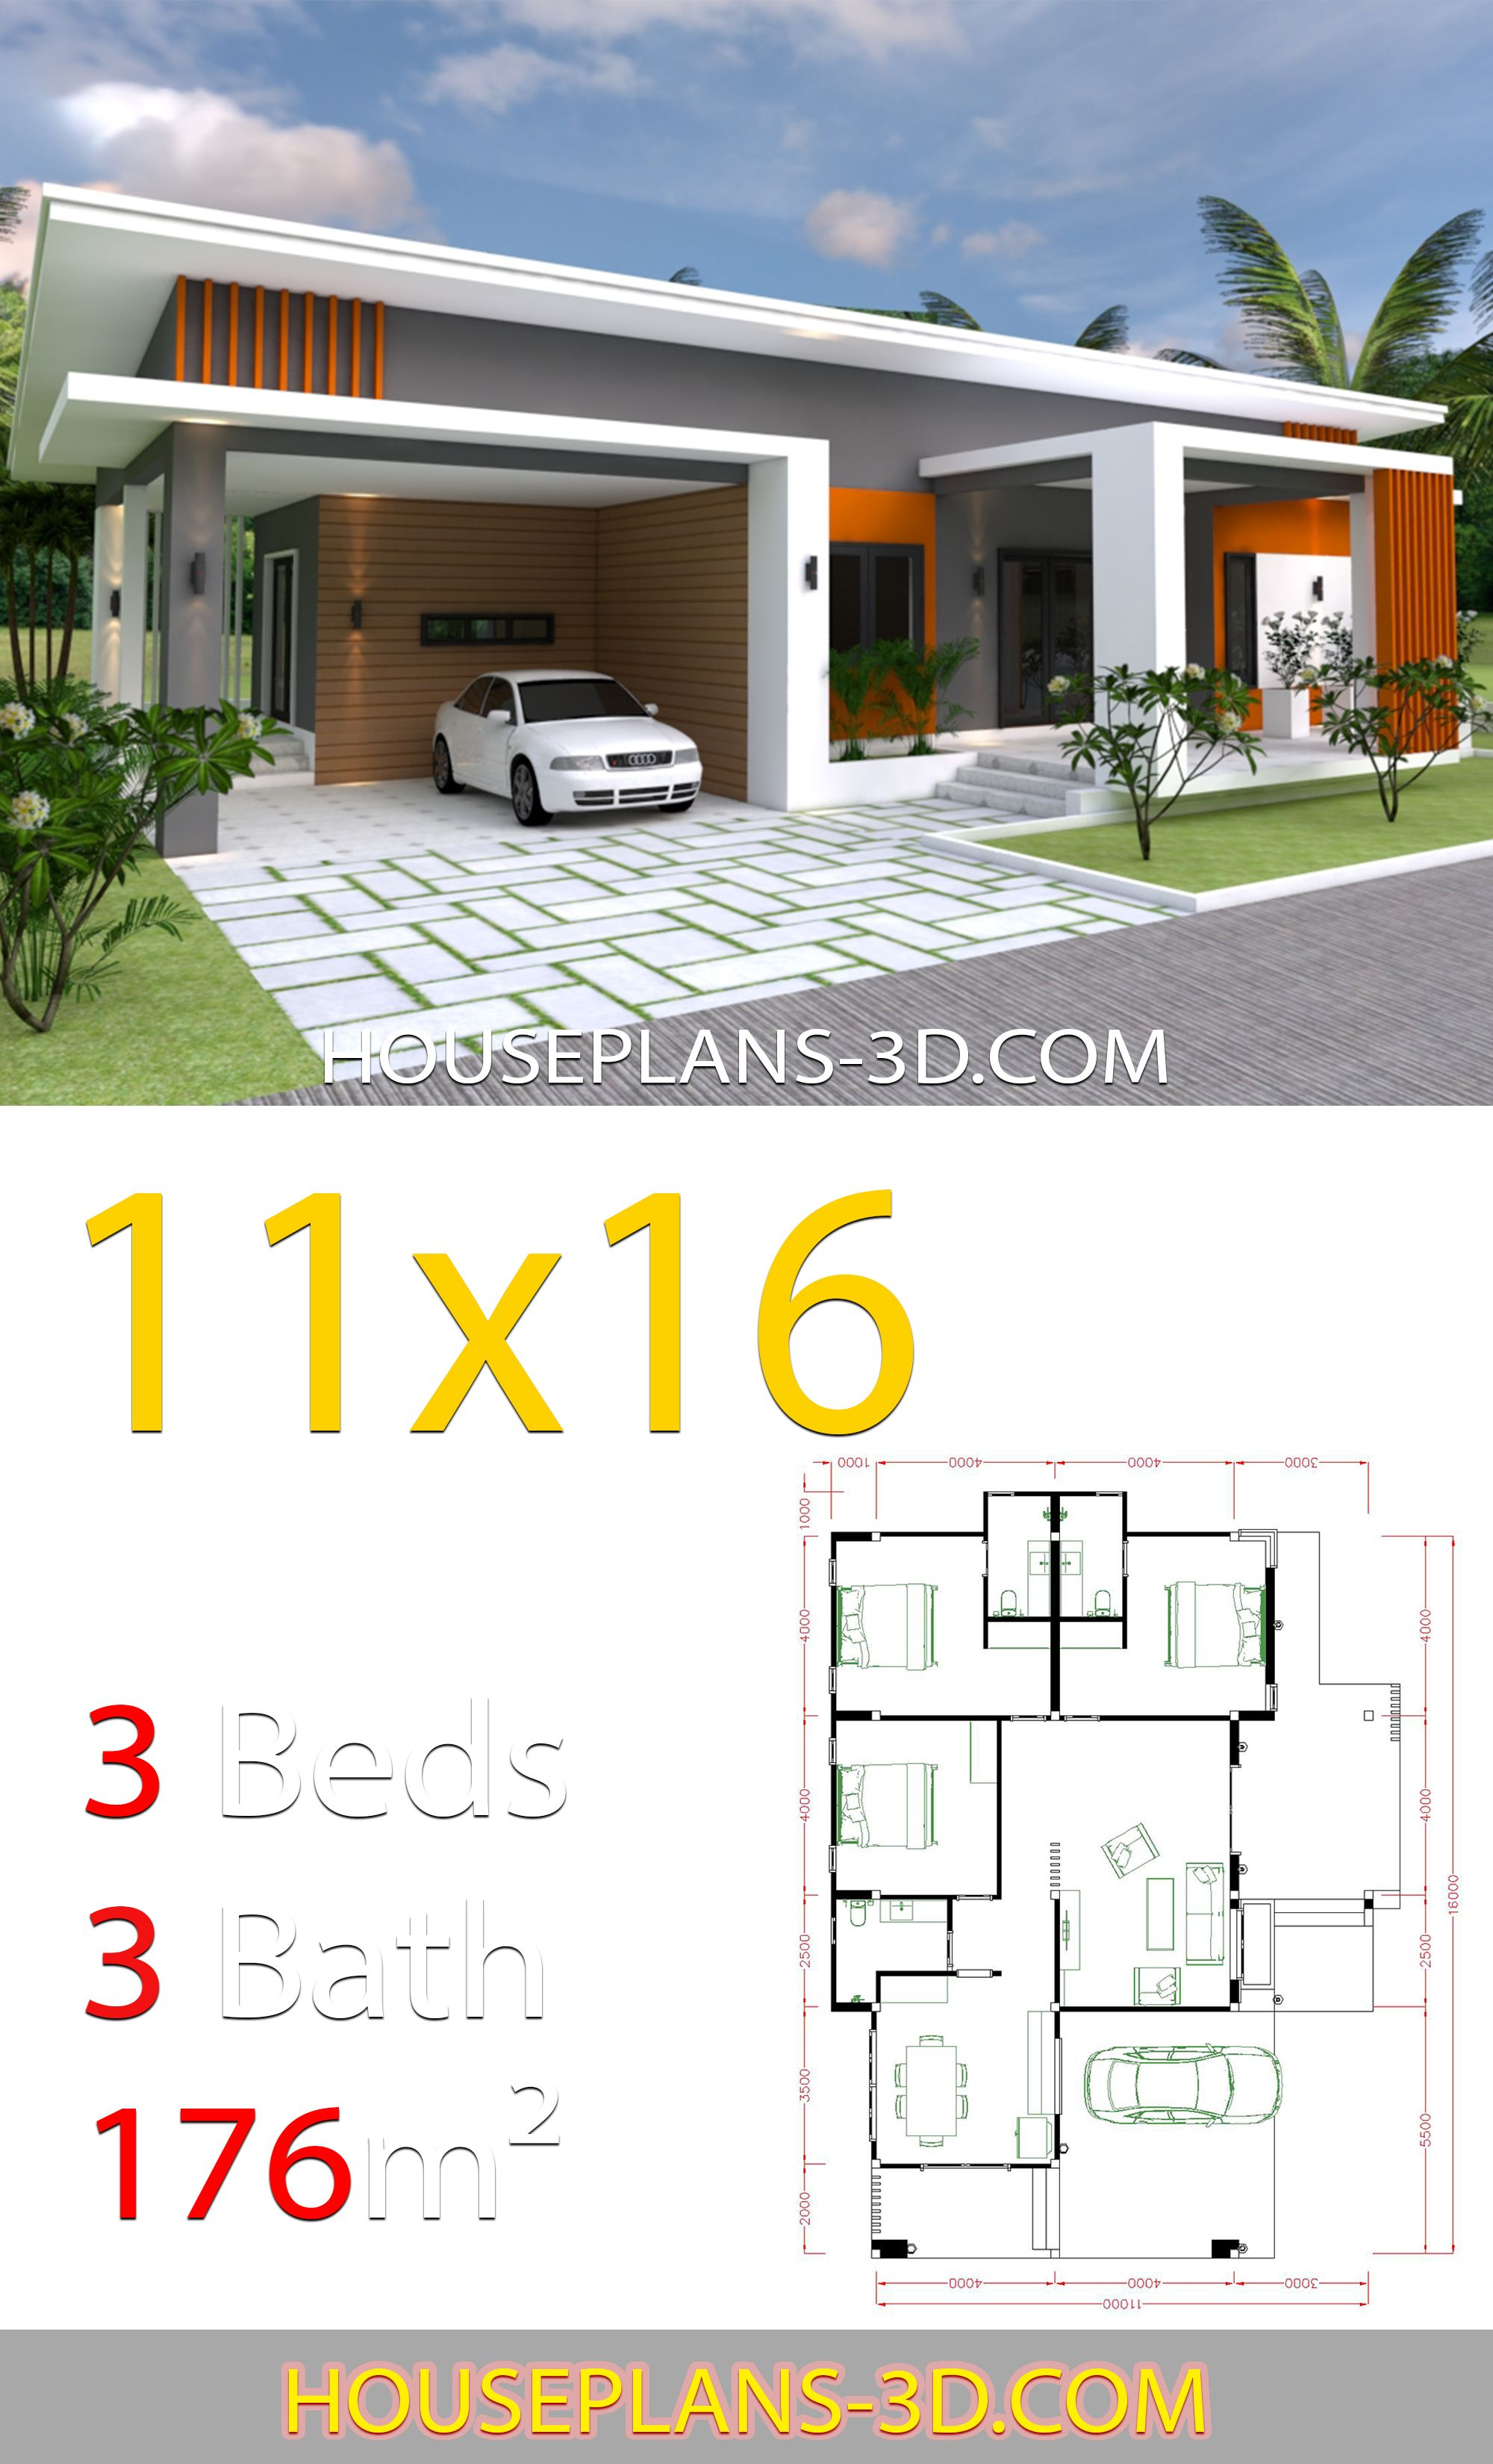 Home Design 11x16 With 3 Bedrooms Slop Roof House Plans 3d In 2020 Diy House Plans House Plans Affordable House Plans